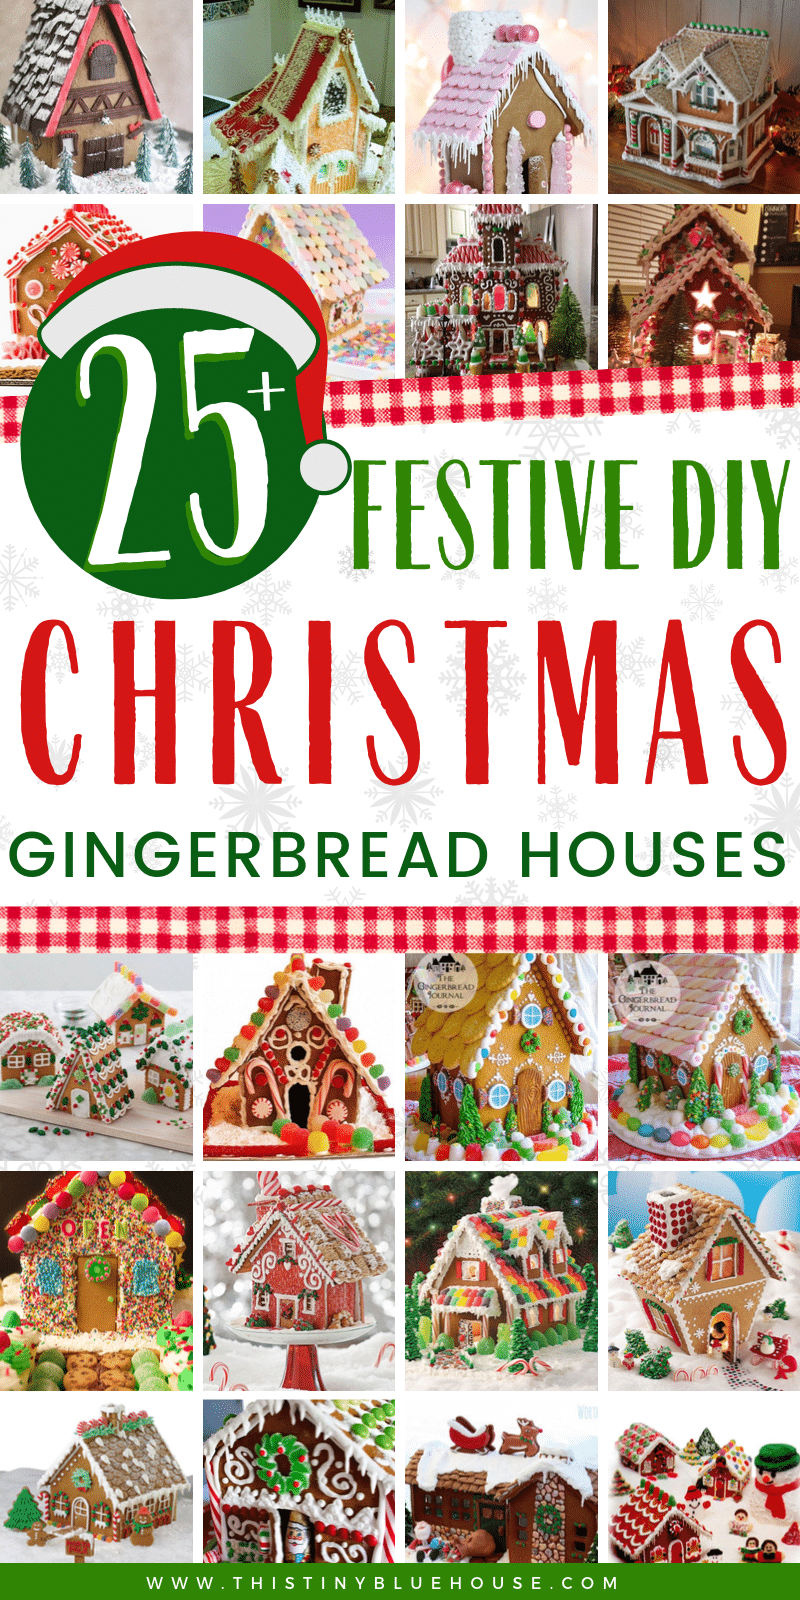 Are you looking for some best Christmas Gingerbread houses? Here are over 25 adorable Gingerbread houses that are the perfect inspiration for your own gingerbread house creation this holiday season. #gingerbreadhouseideas #gingerbreadhousesdiy #gingerbreadhousedecorating #gingerbreadhouseamazing #gingerbreadhouseschristmas